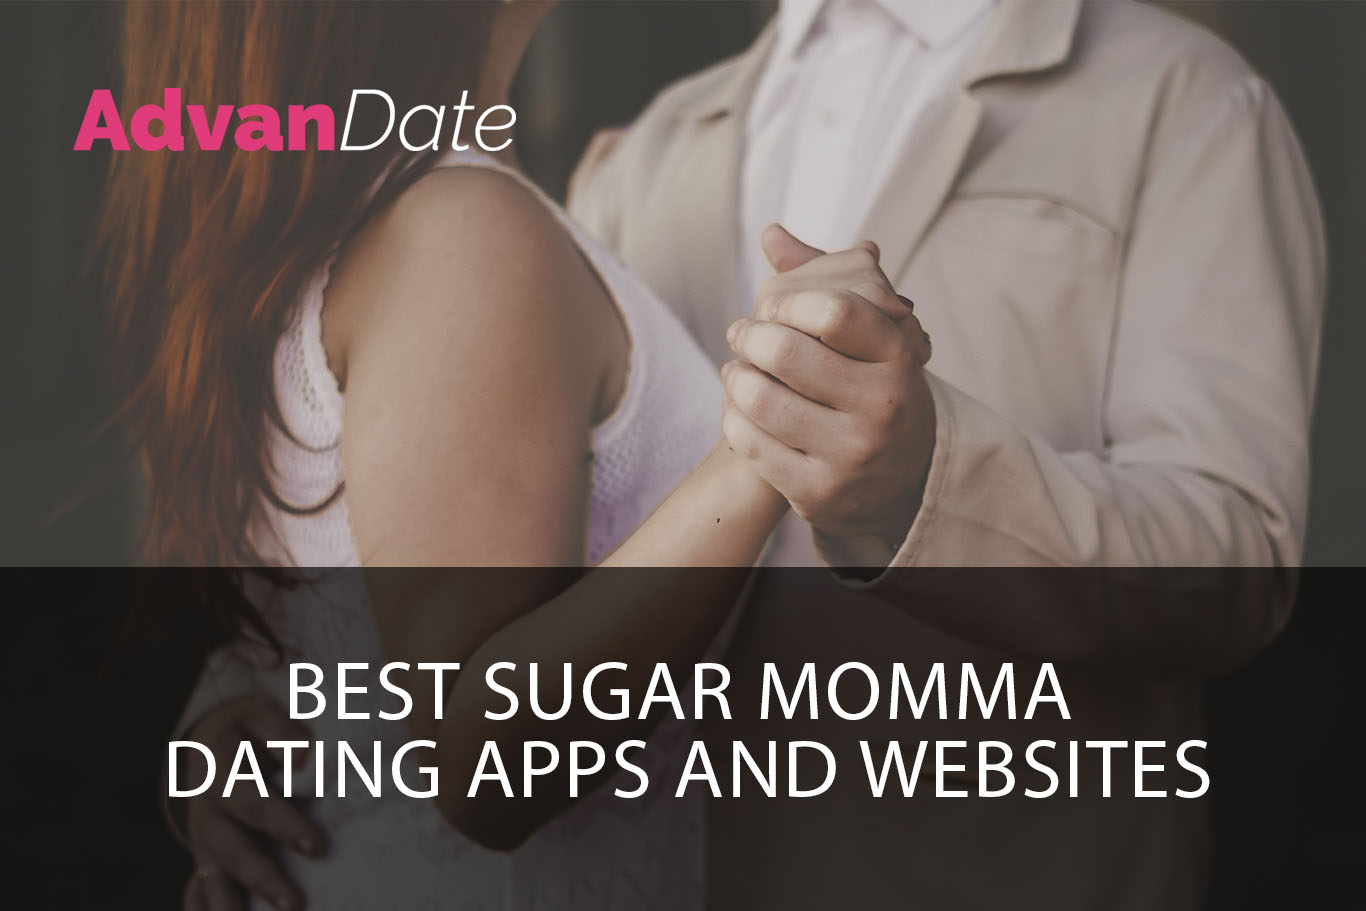 Best Sugar Momma dating apps and websites